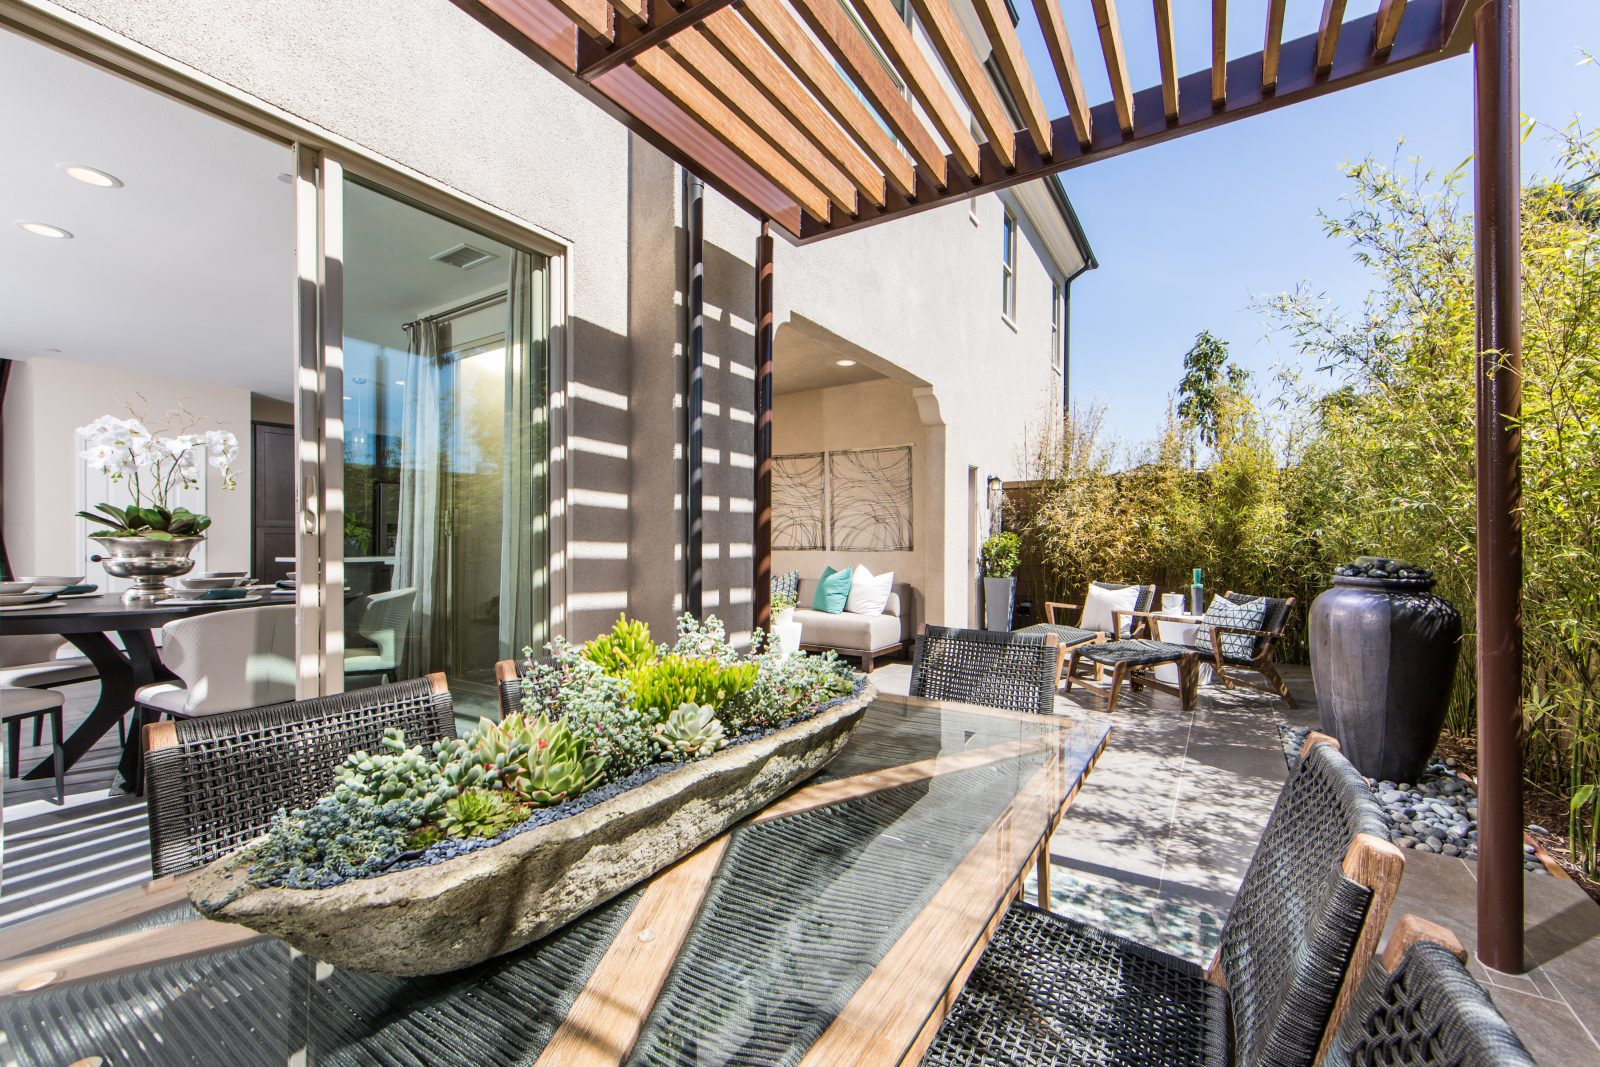 Irvine Townhome for Sale with California Room